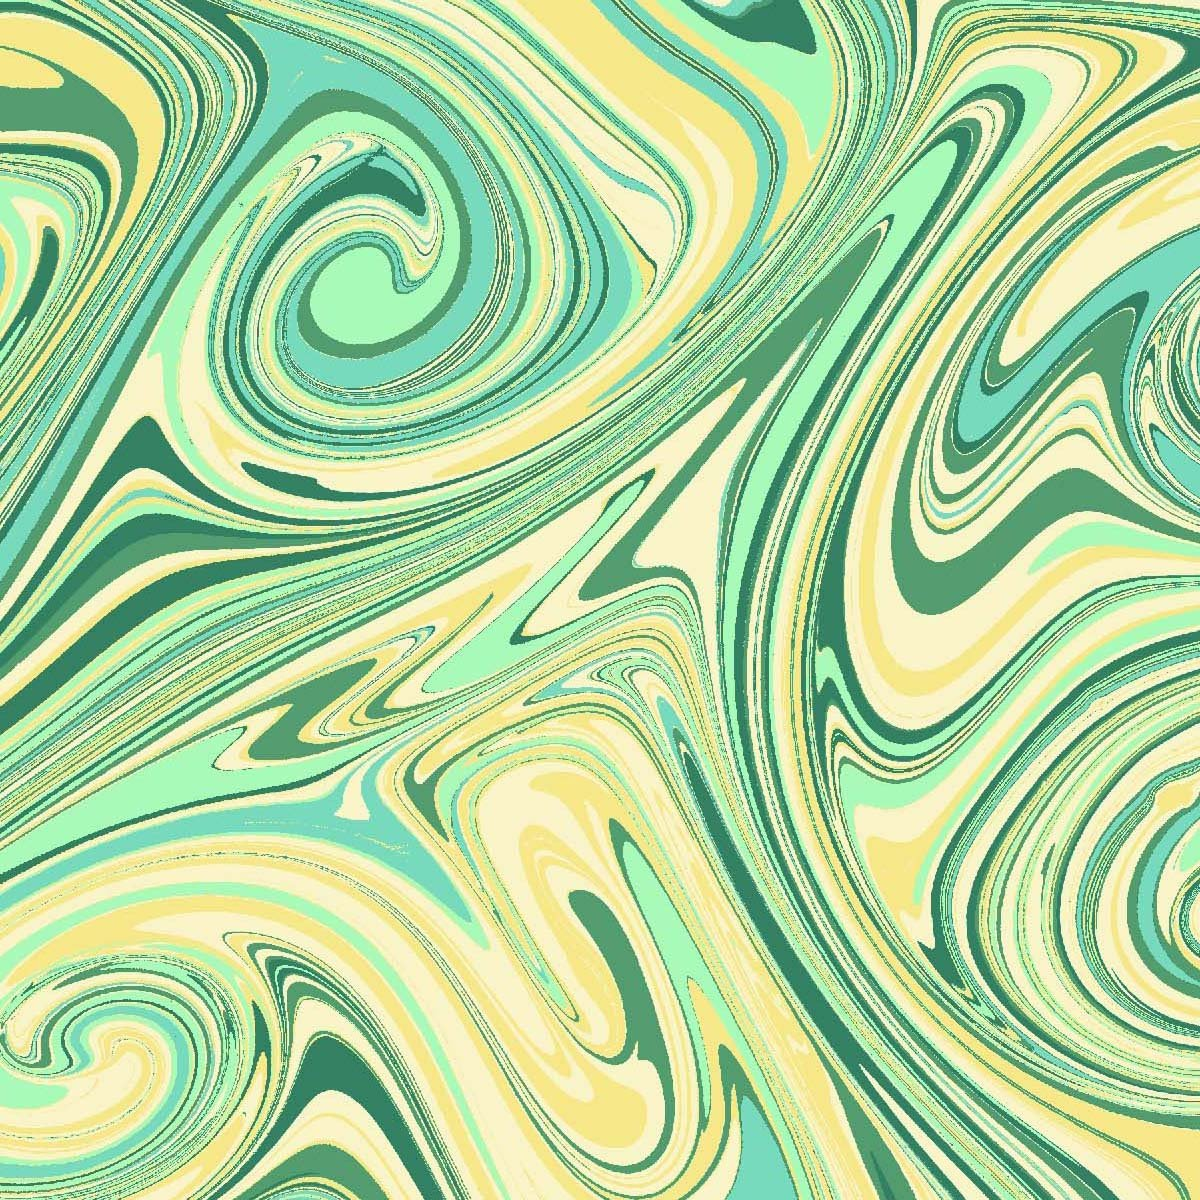 Magic Fountain - green with yellow colors swirled